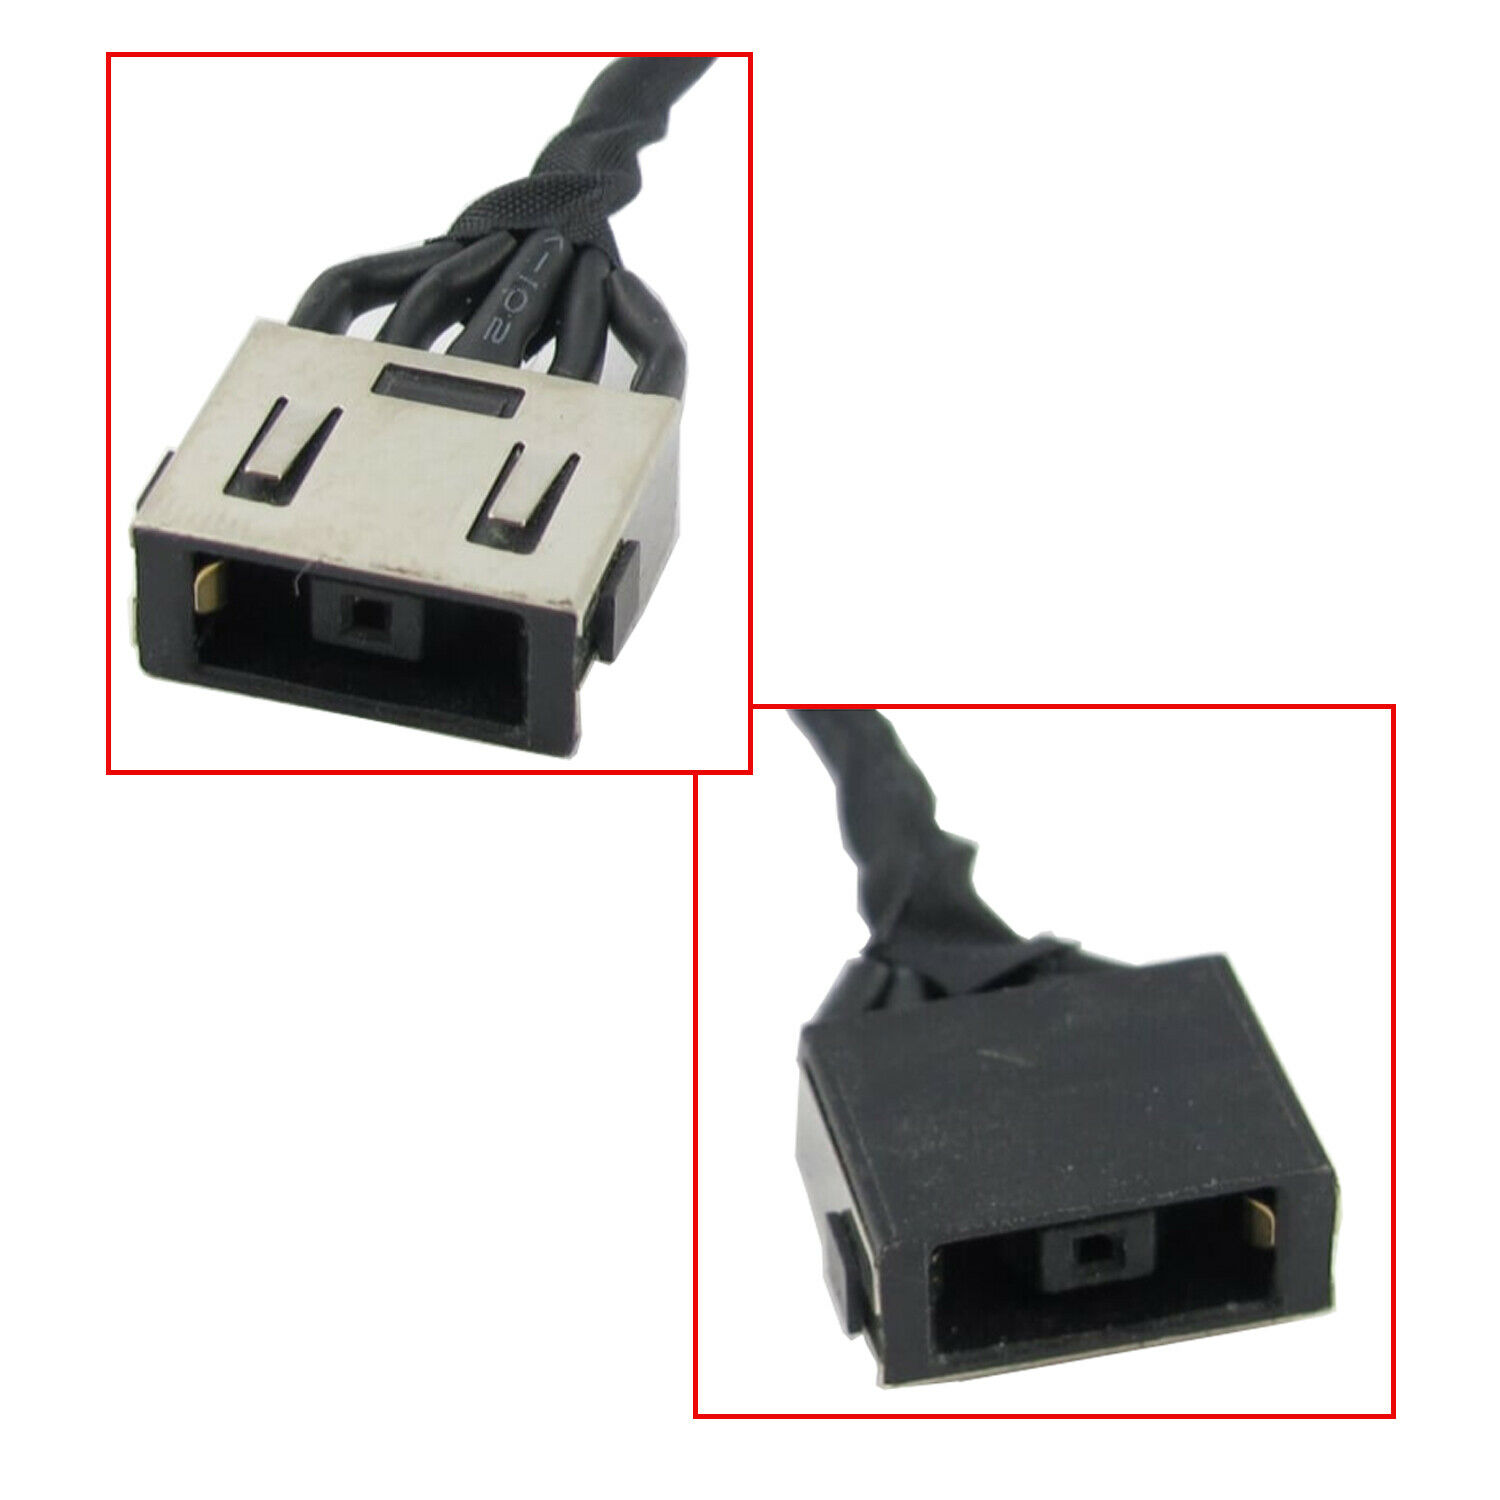 1x  NEW Lenovo IdeaPad G70-70 G70-80 DC power jack with cable harness connector